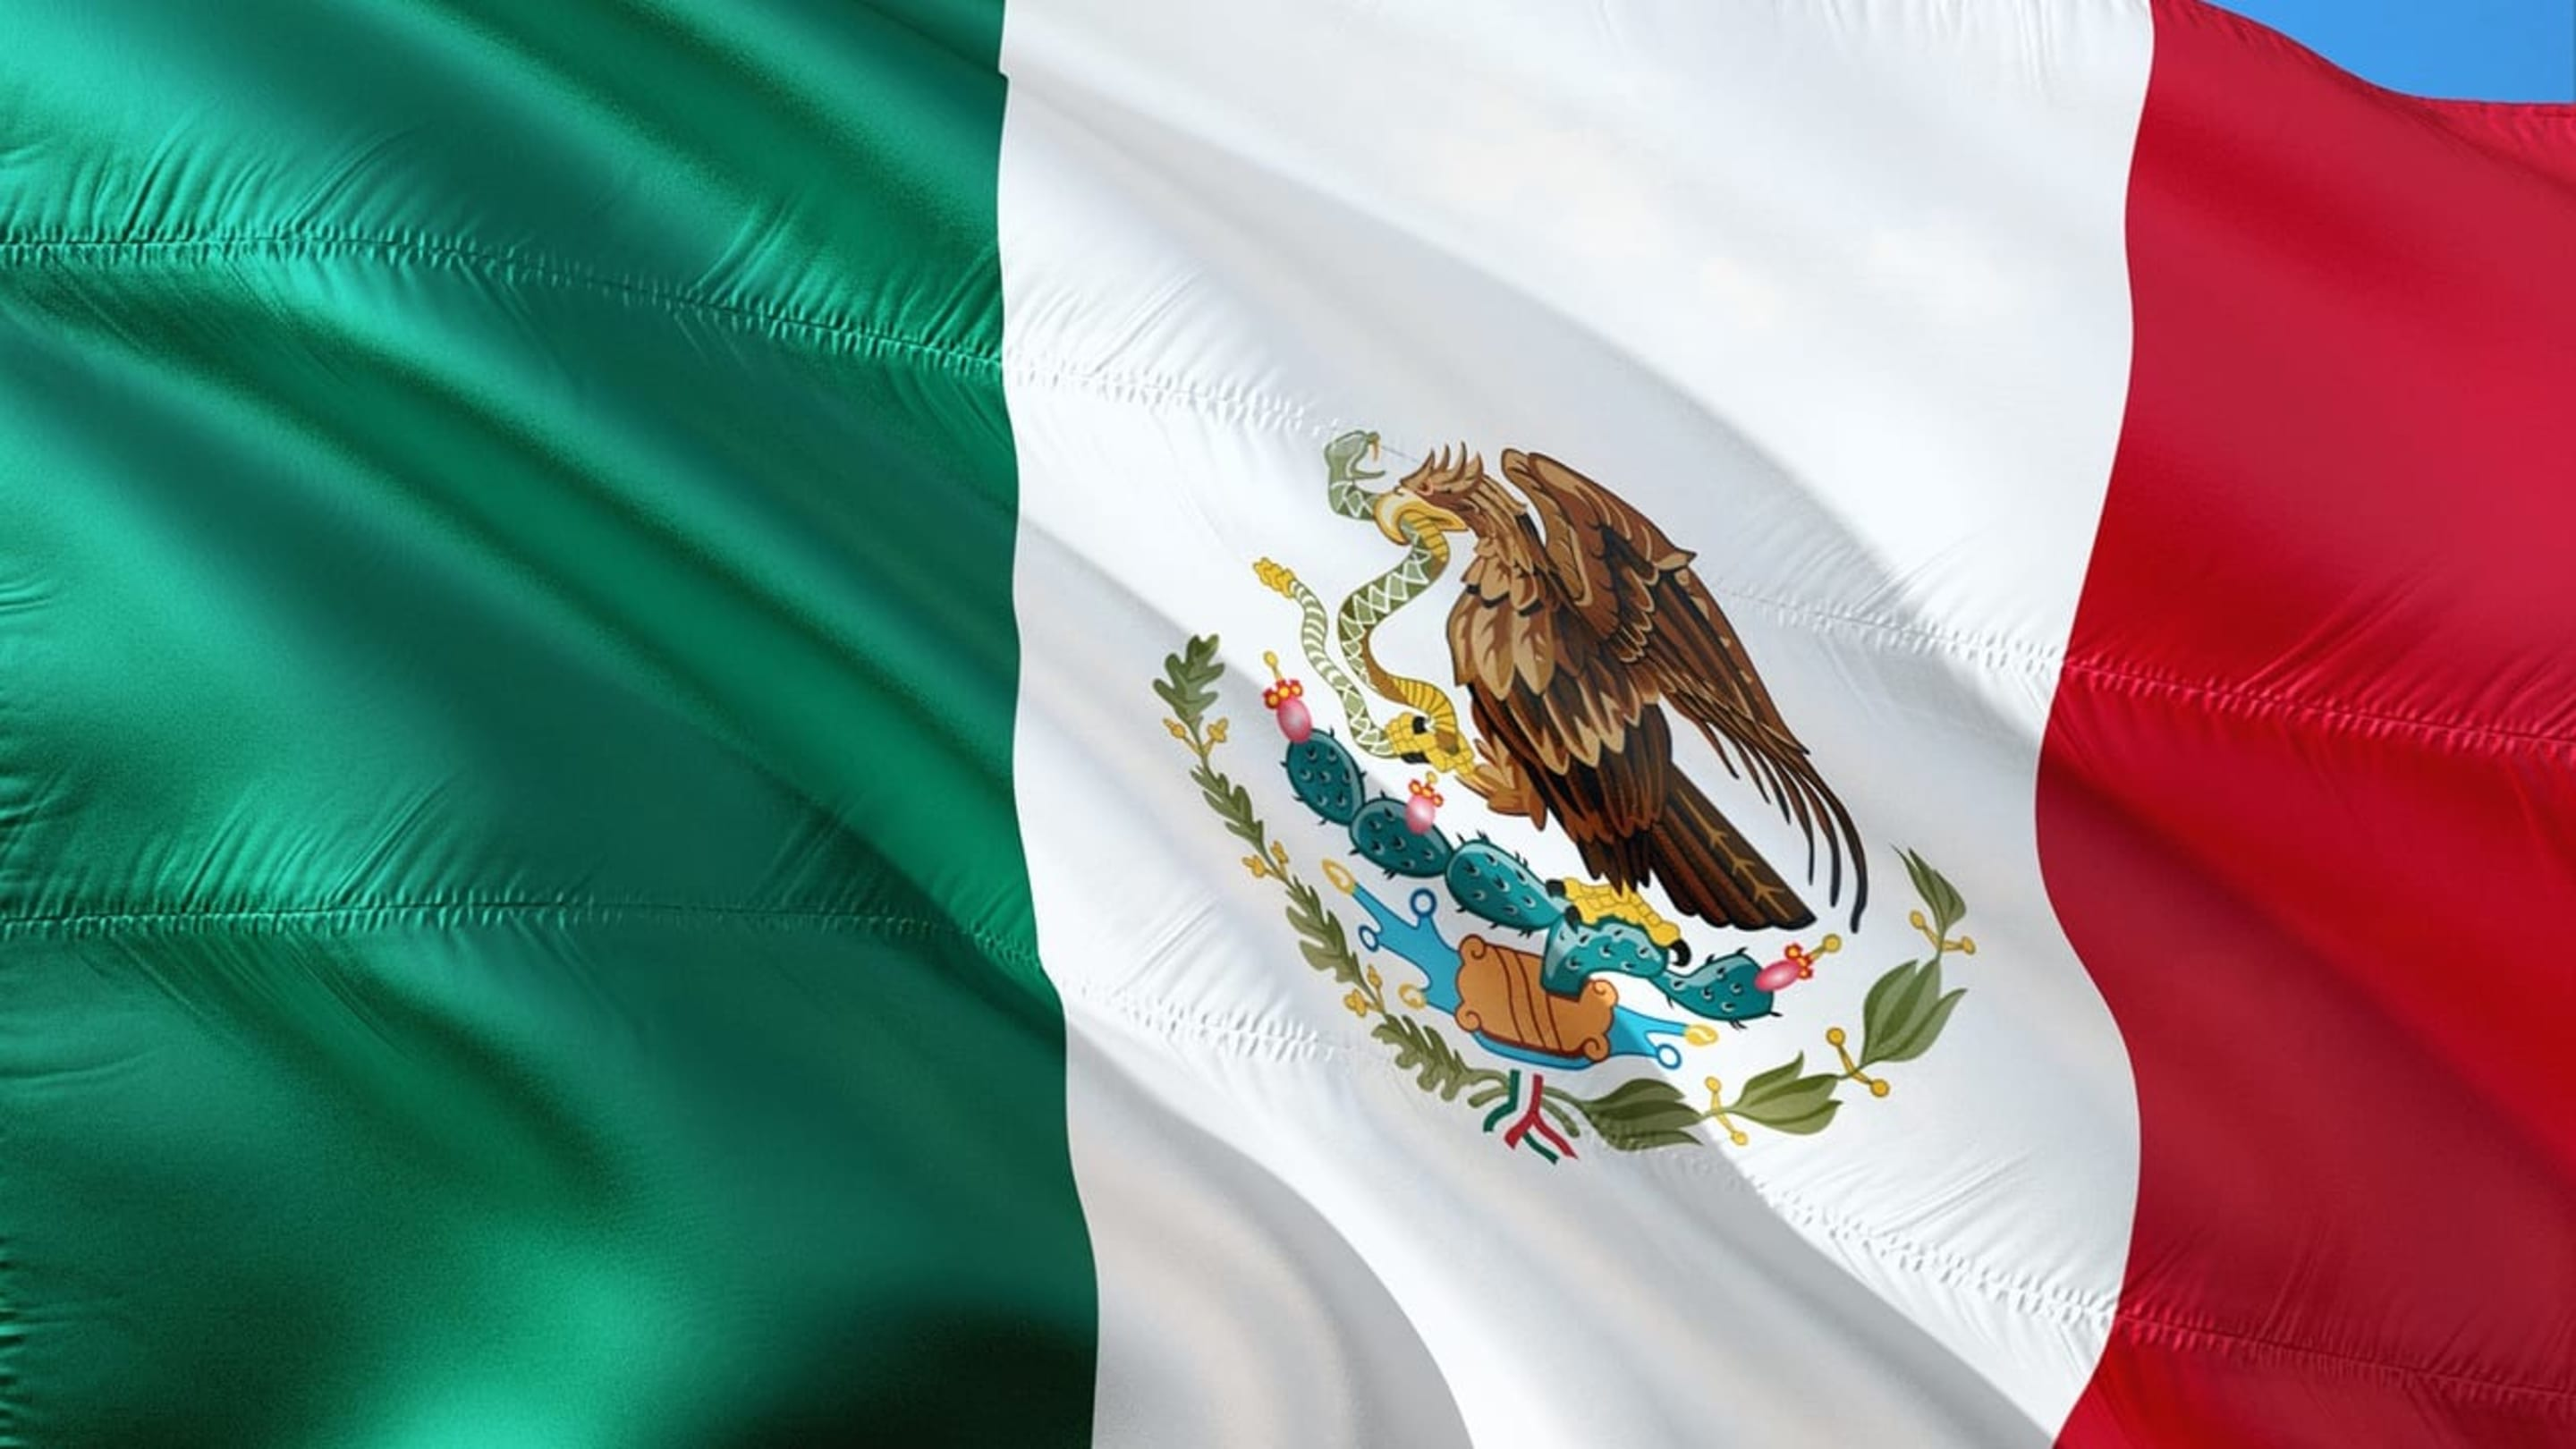 Mexico Publishes Medical Cannabis Regulations After Three-Year Delay